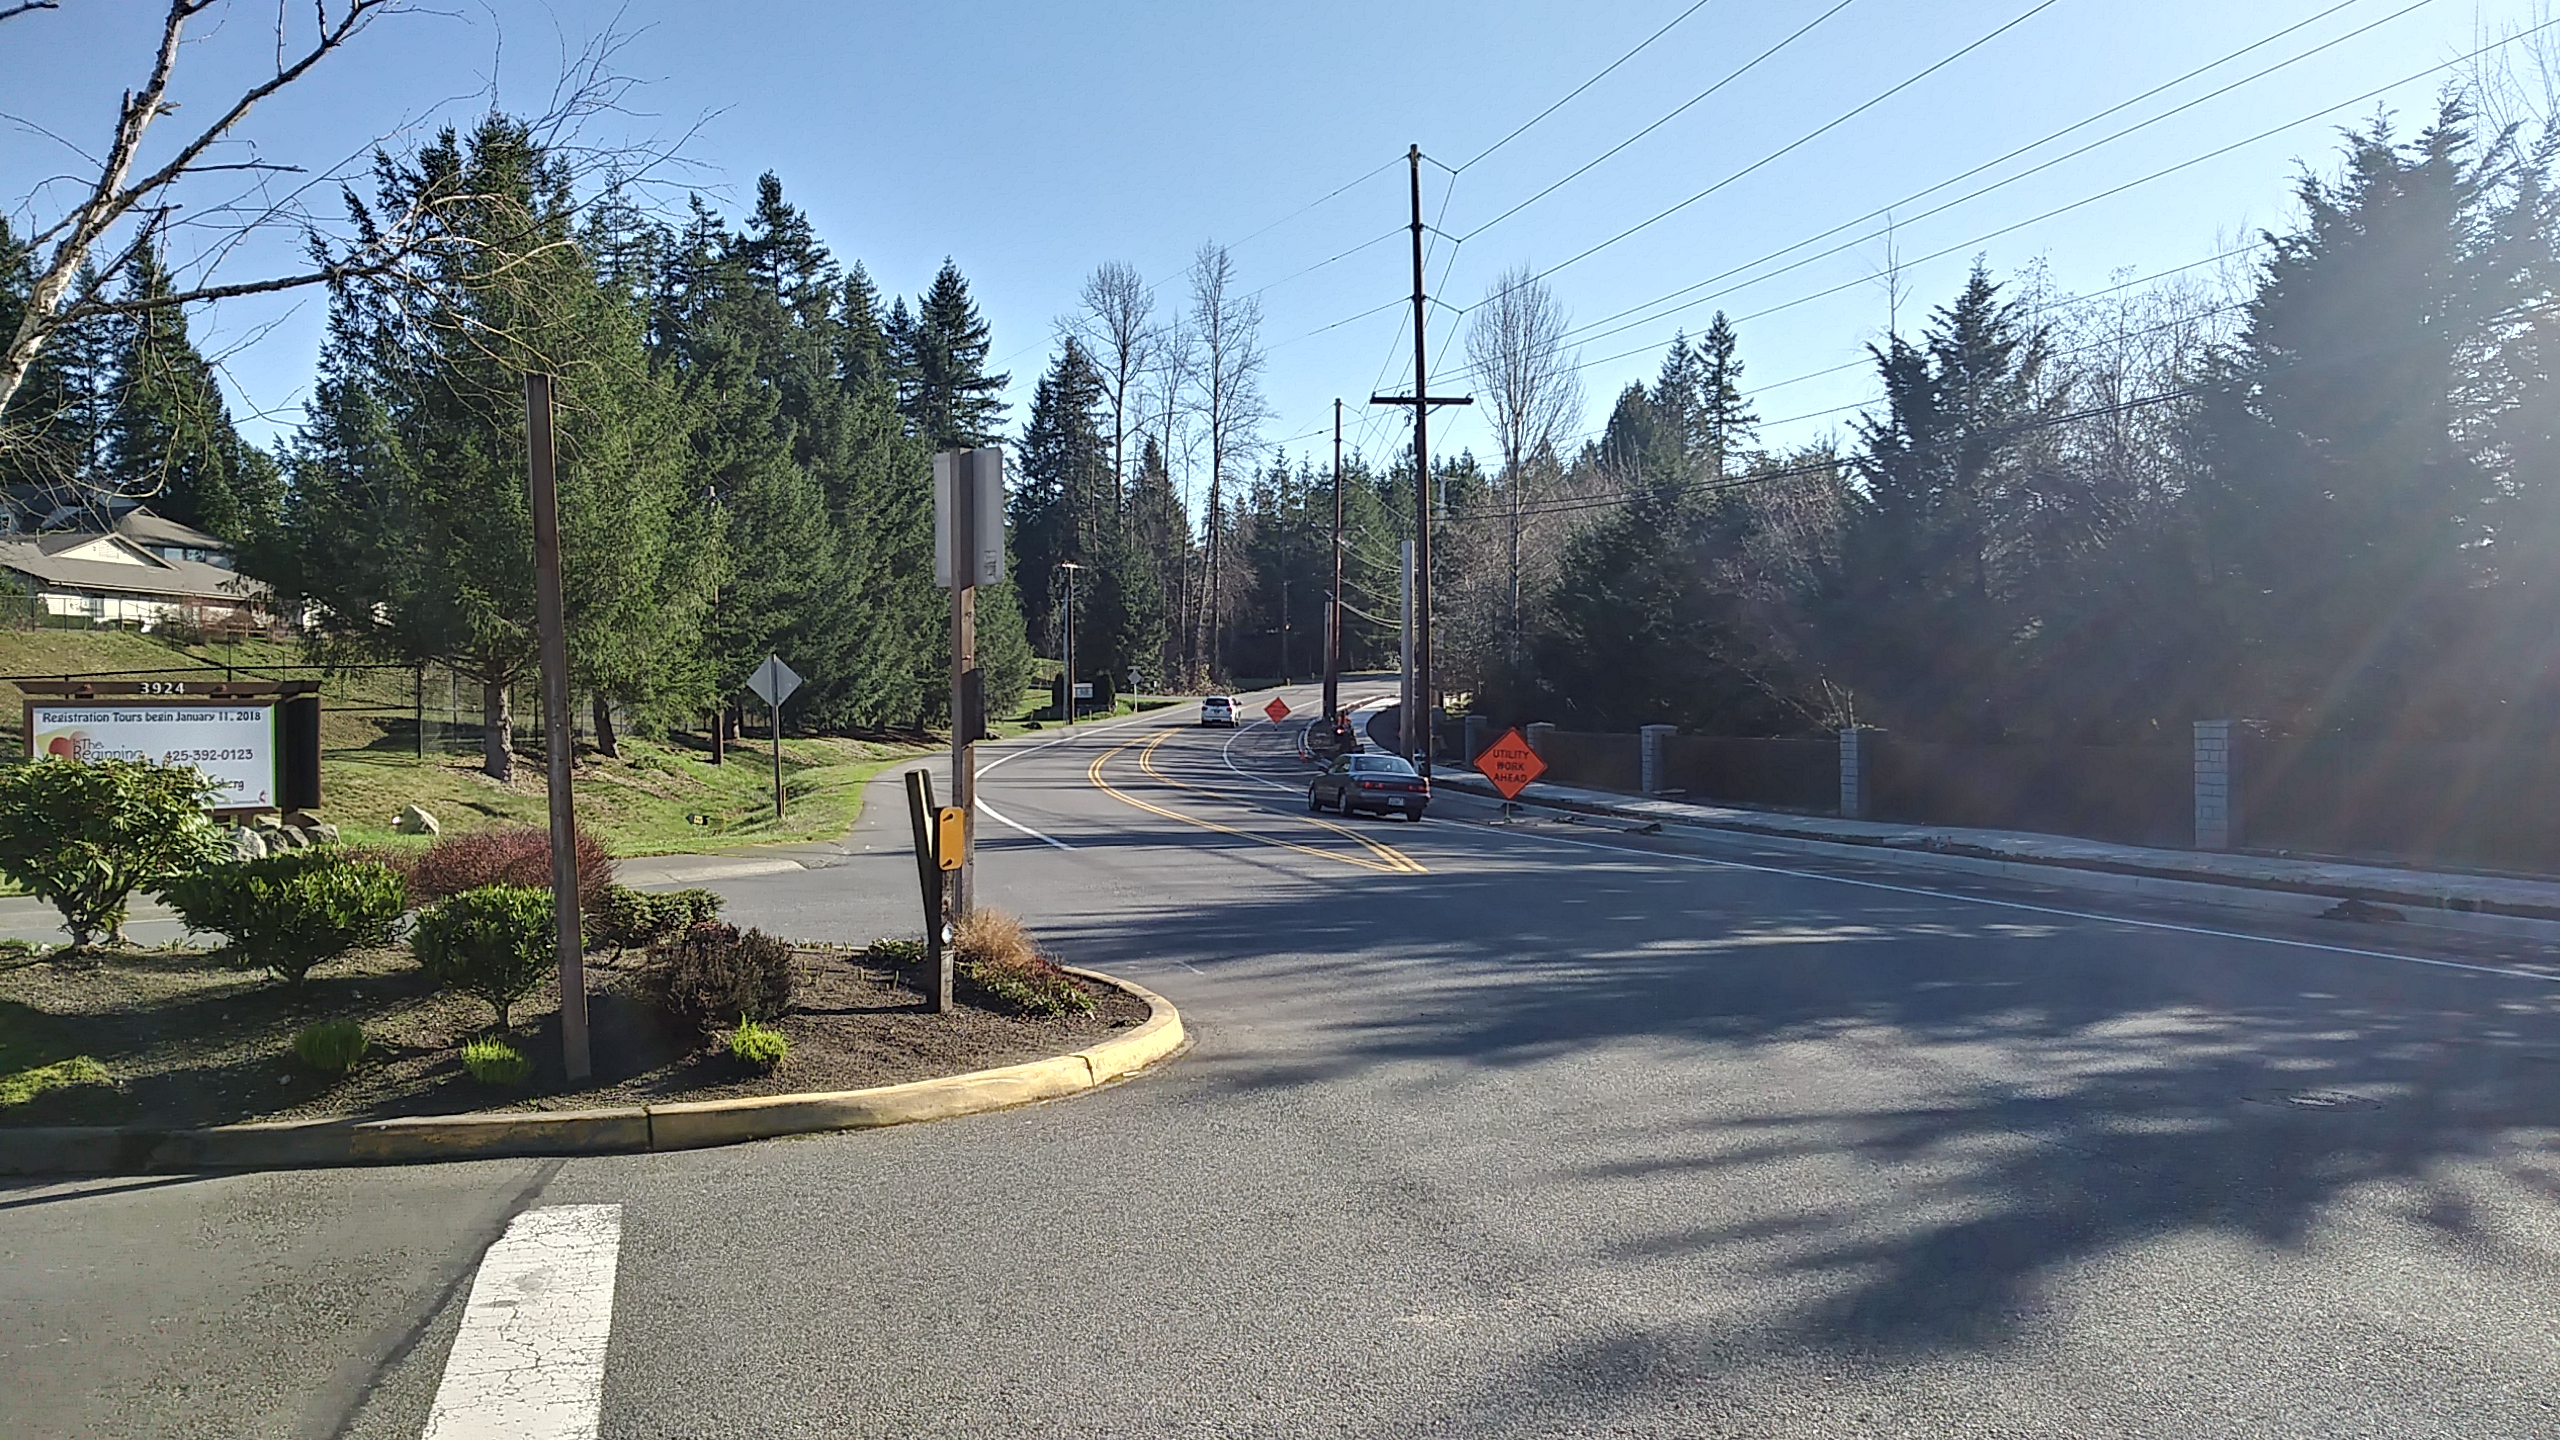 Section of Issaquah-Pine Lake Road with three lanes that curve up a hill. There is one lane oncoming, a center median for a small section of the road and two lanes going away from the camera. Two cars are driving away up the hill.